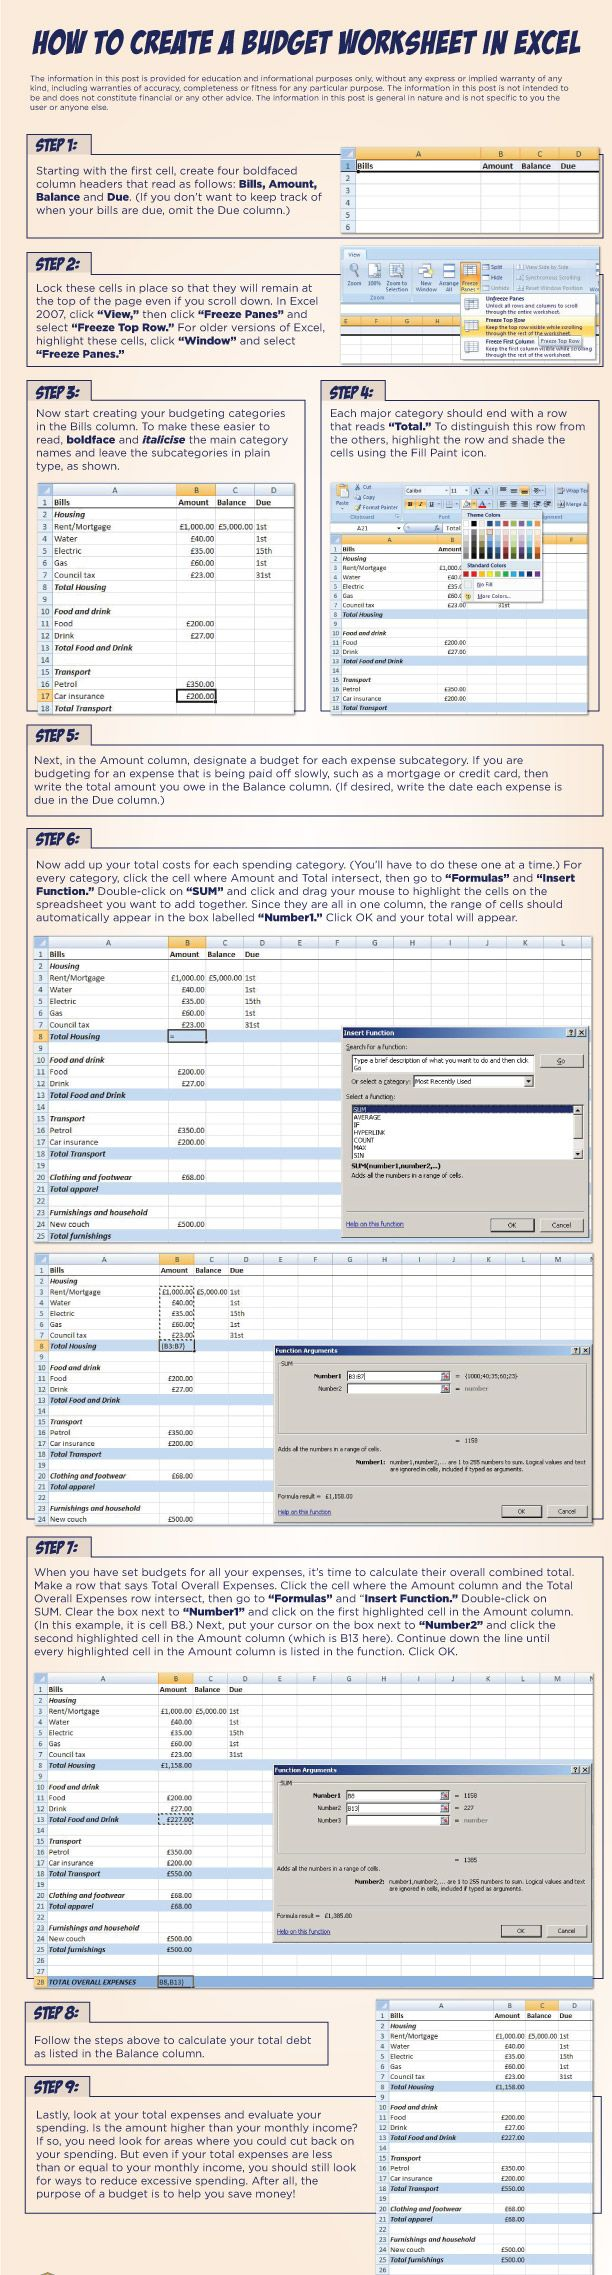 17 best images about excel on pinterest monthly budget template daily planners and home health. Black Bedroom Furniture Sets. Home Design Ideas